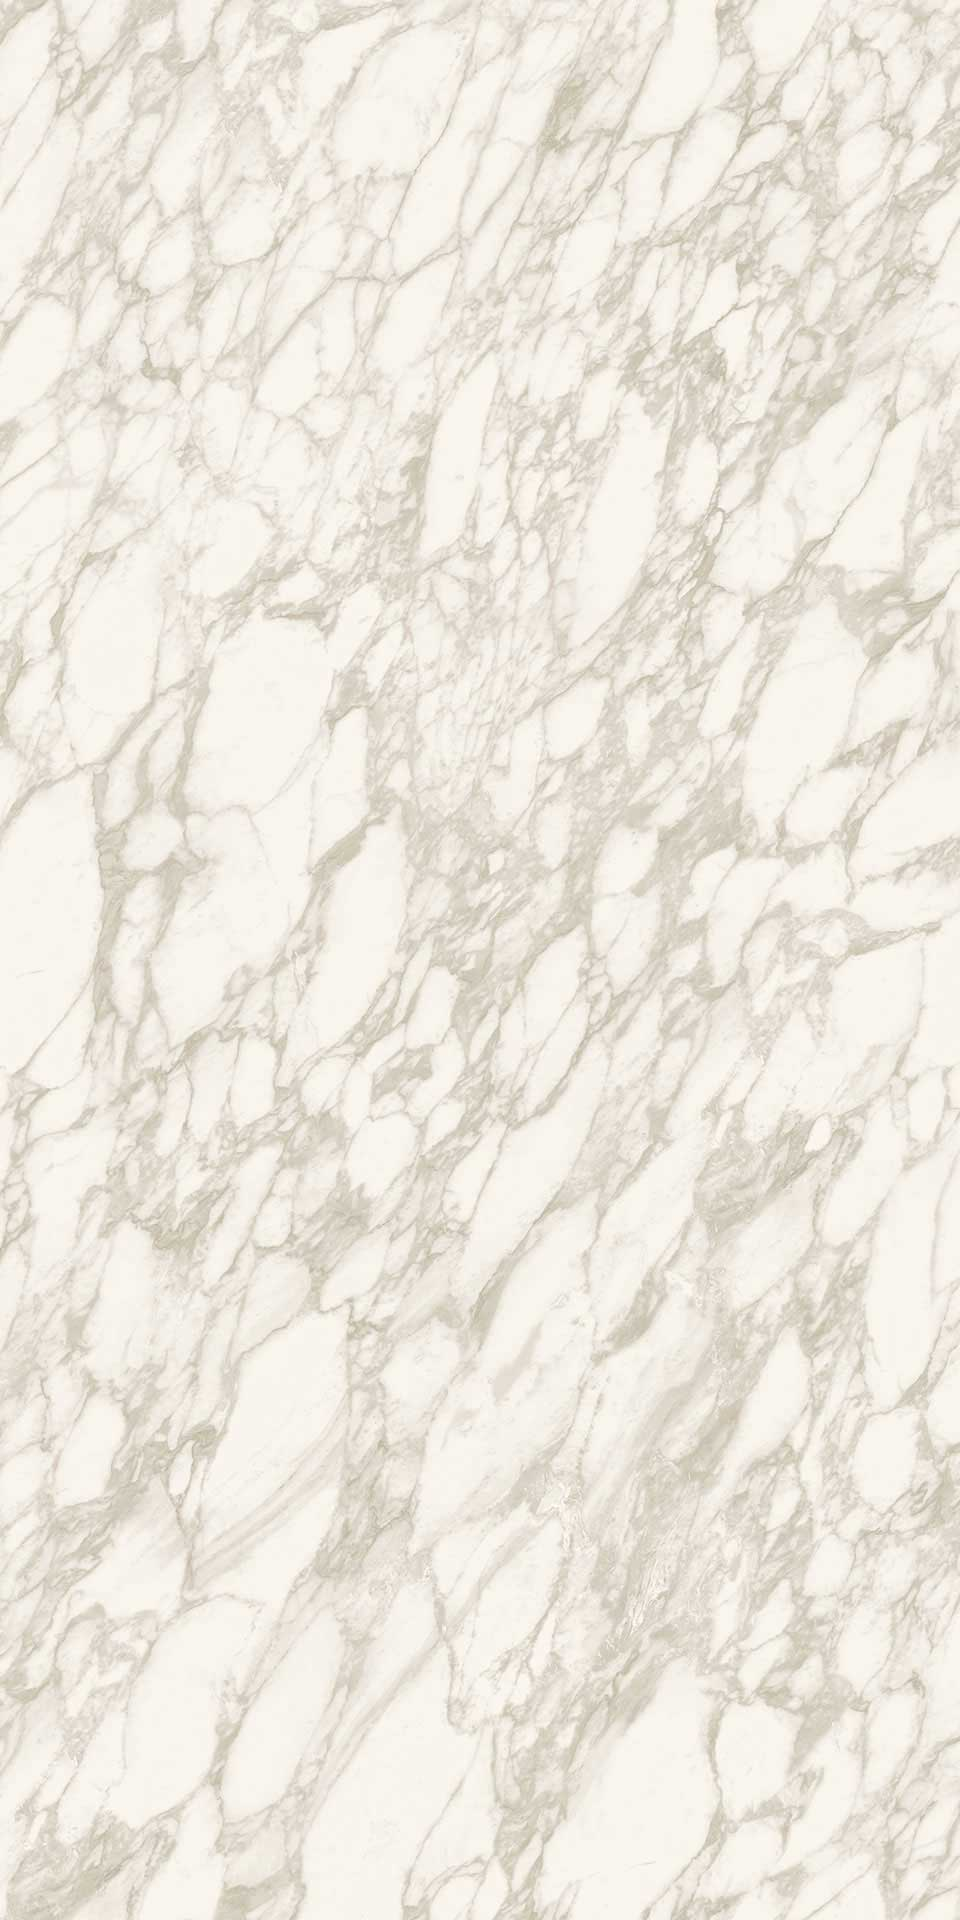 162x324-porcelain-stoneware-tiles-atlas-plan-bookmatch